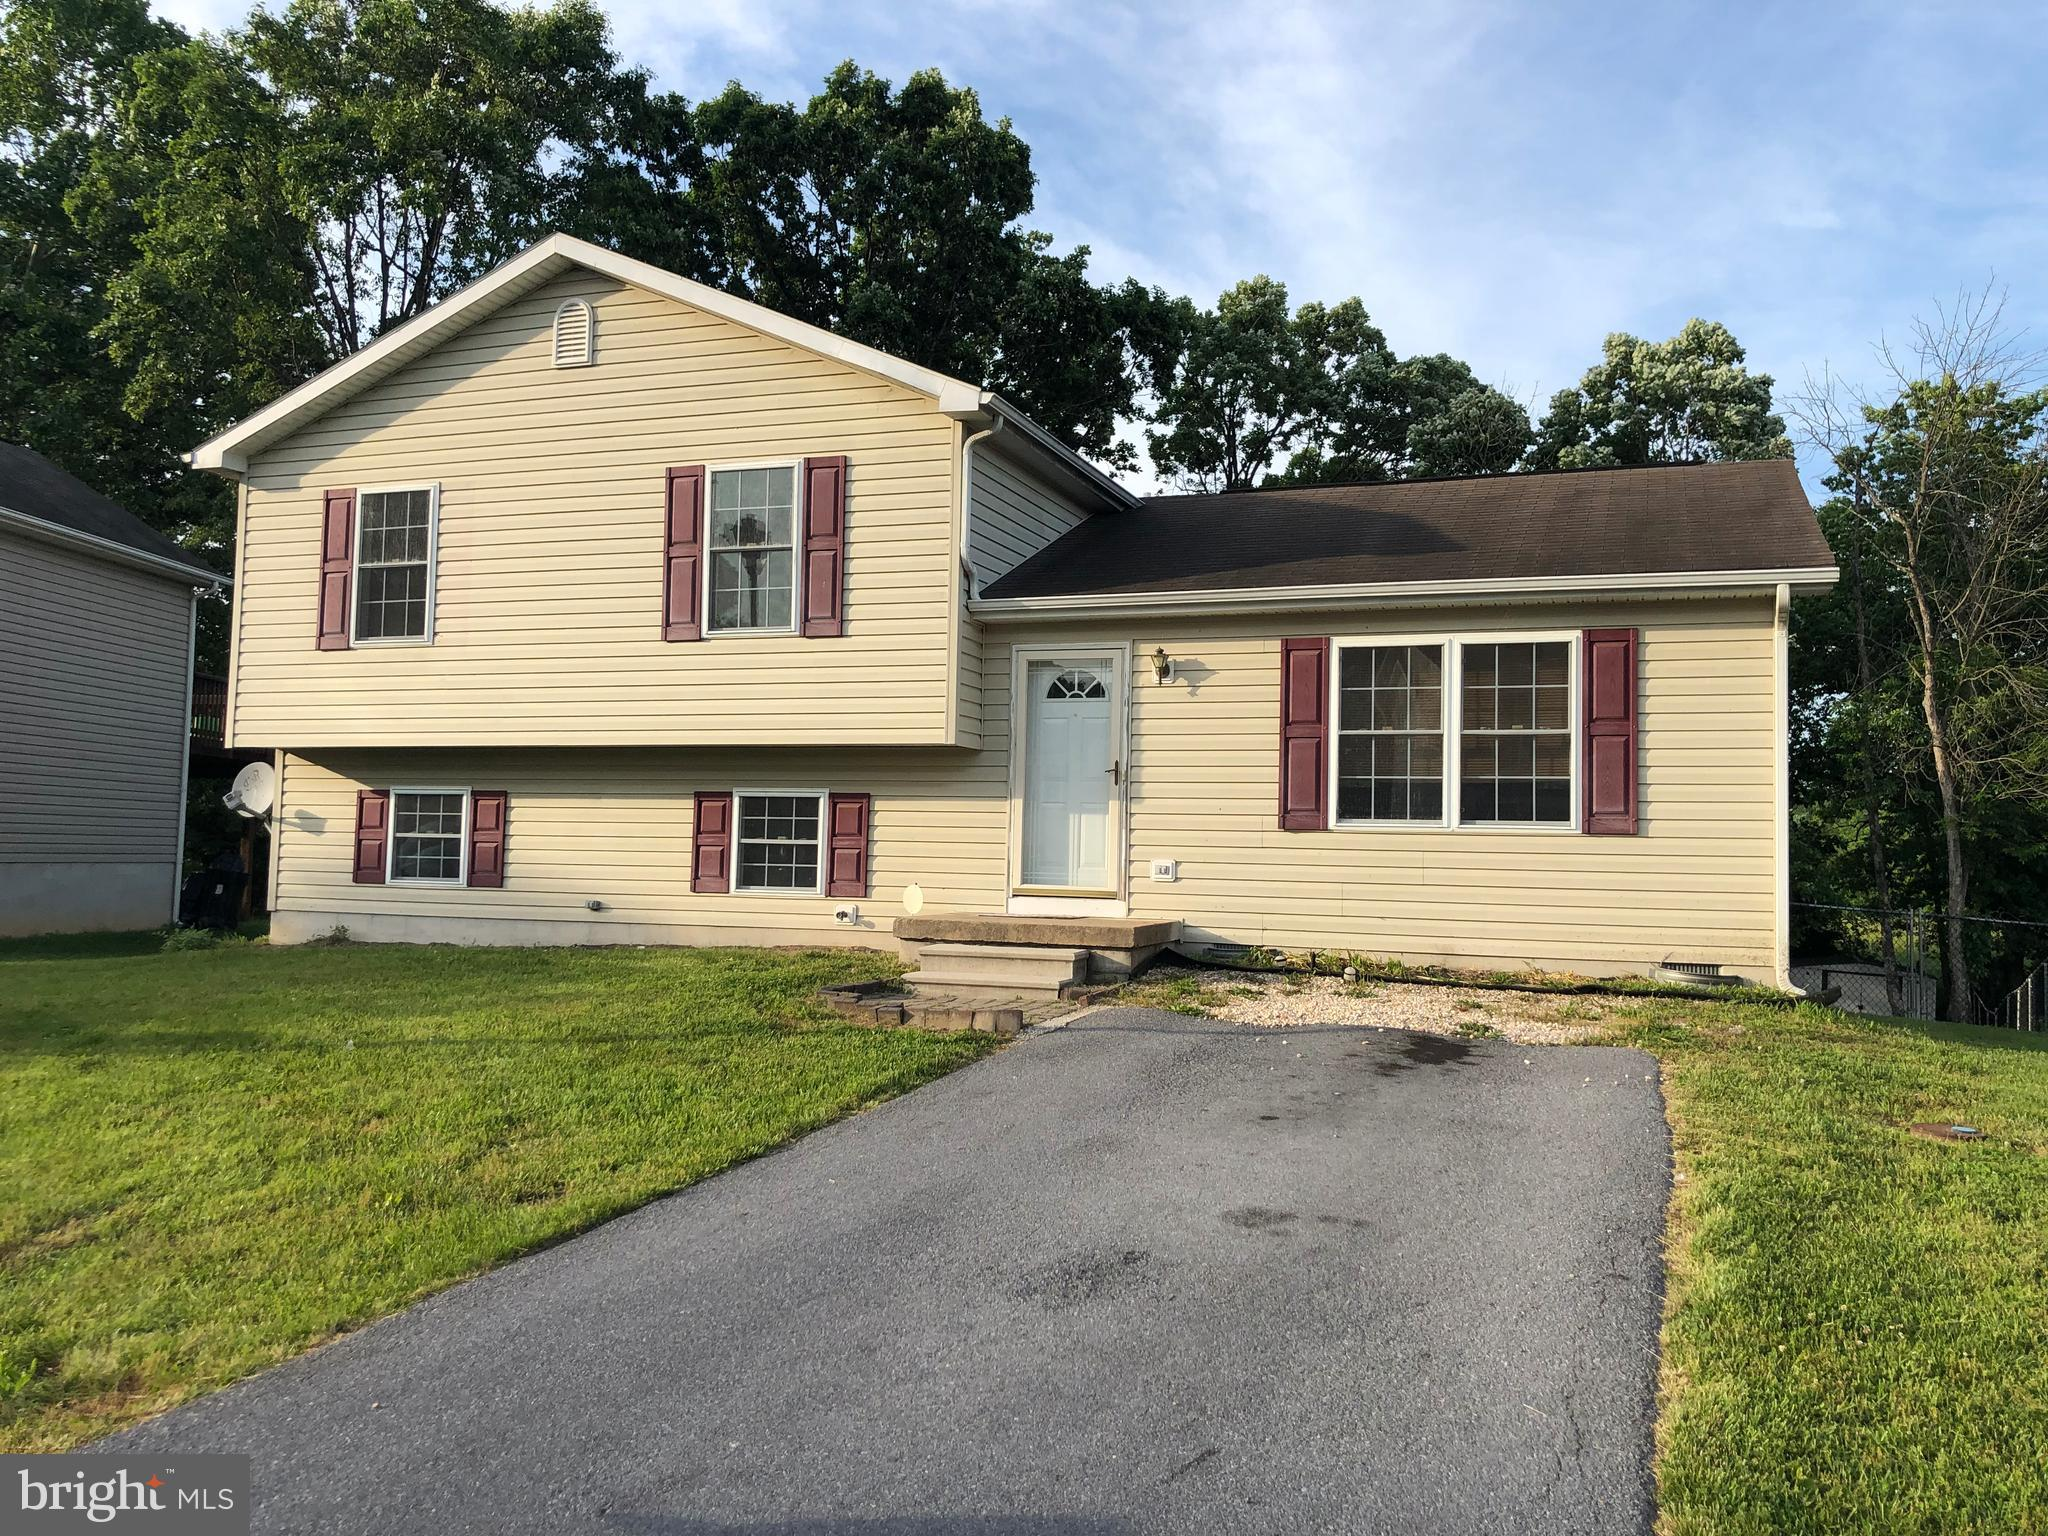 Split level home features 3 BRs and 3 full BAs with partial finished basement all situated on approx. 0.24ac lot in Wildflower Ridge SD. Home is located close to major roads for easy commute, shopping and amenities.  Offers are due 8/5/19 by Noon 12pm est.